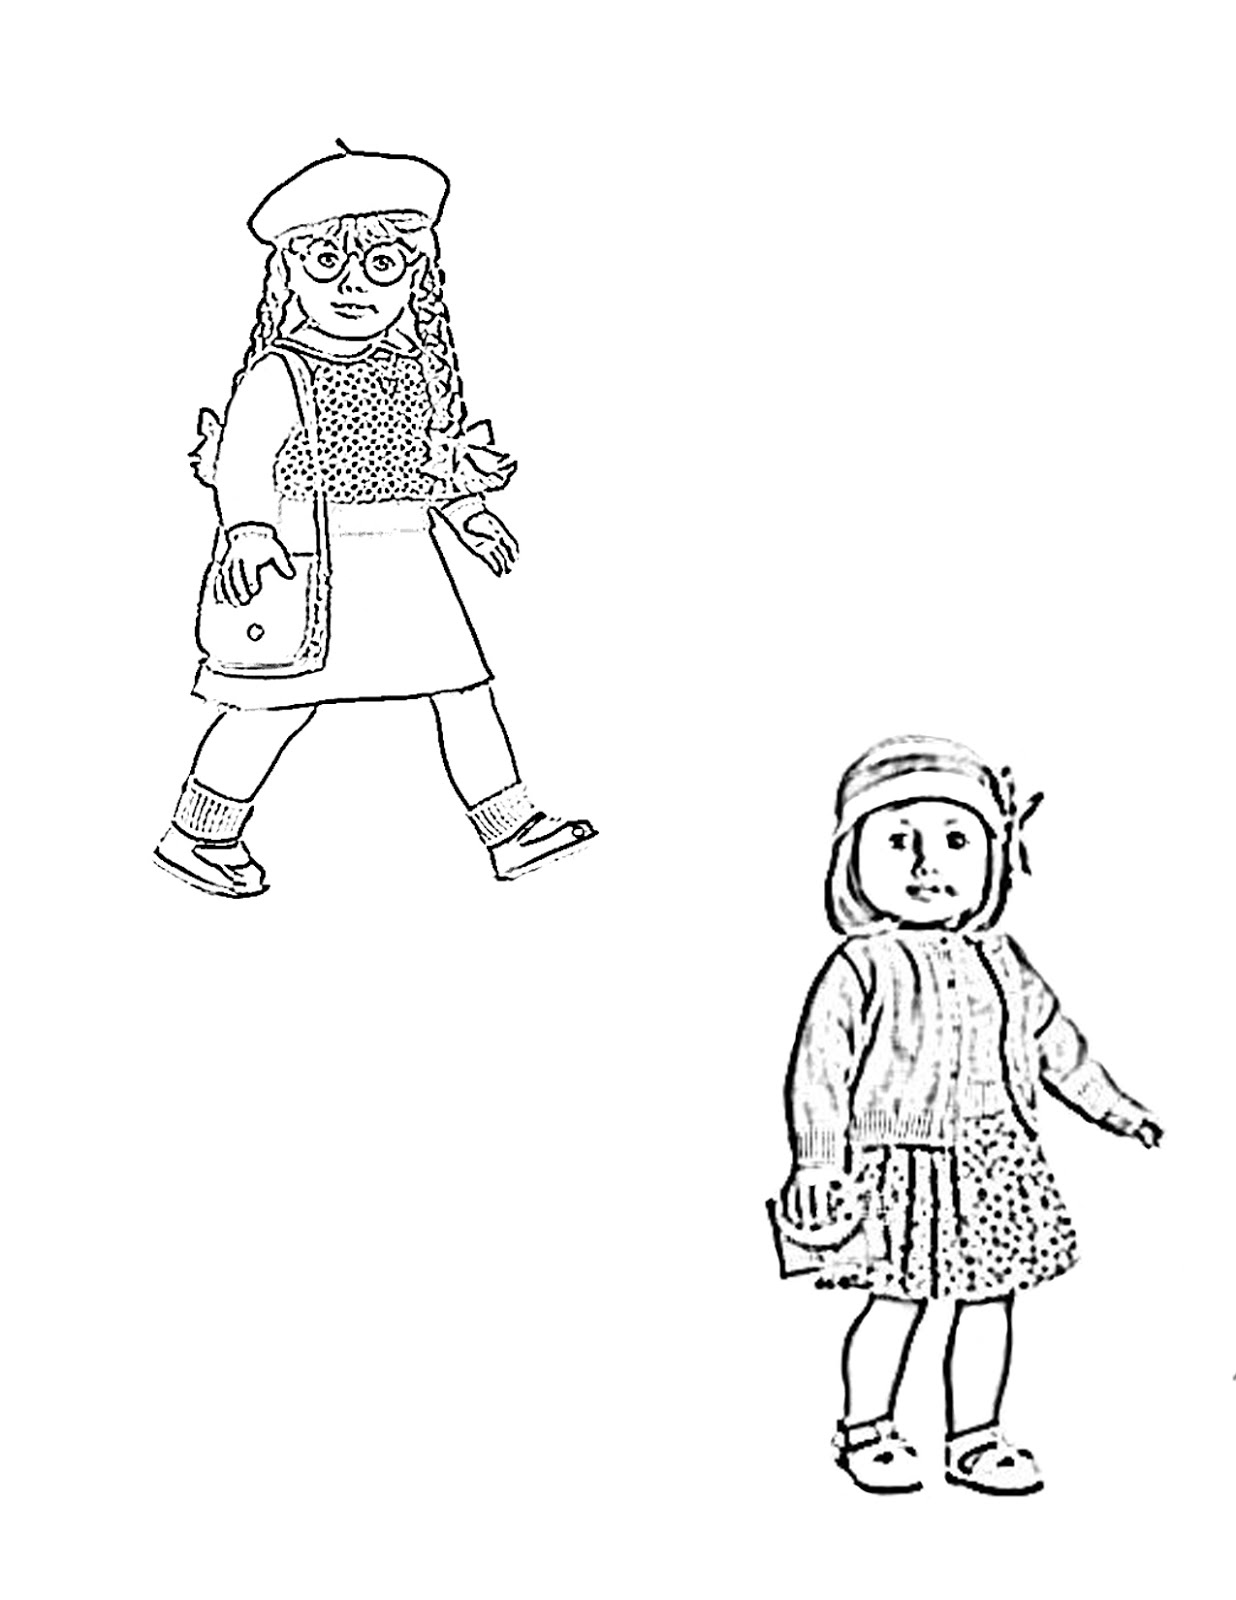 My Cup Overflows Kit Kittredge An American Girl American Doll Coloring Pages